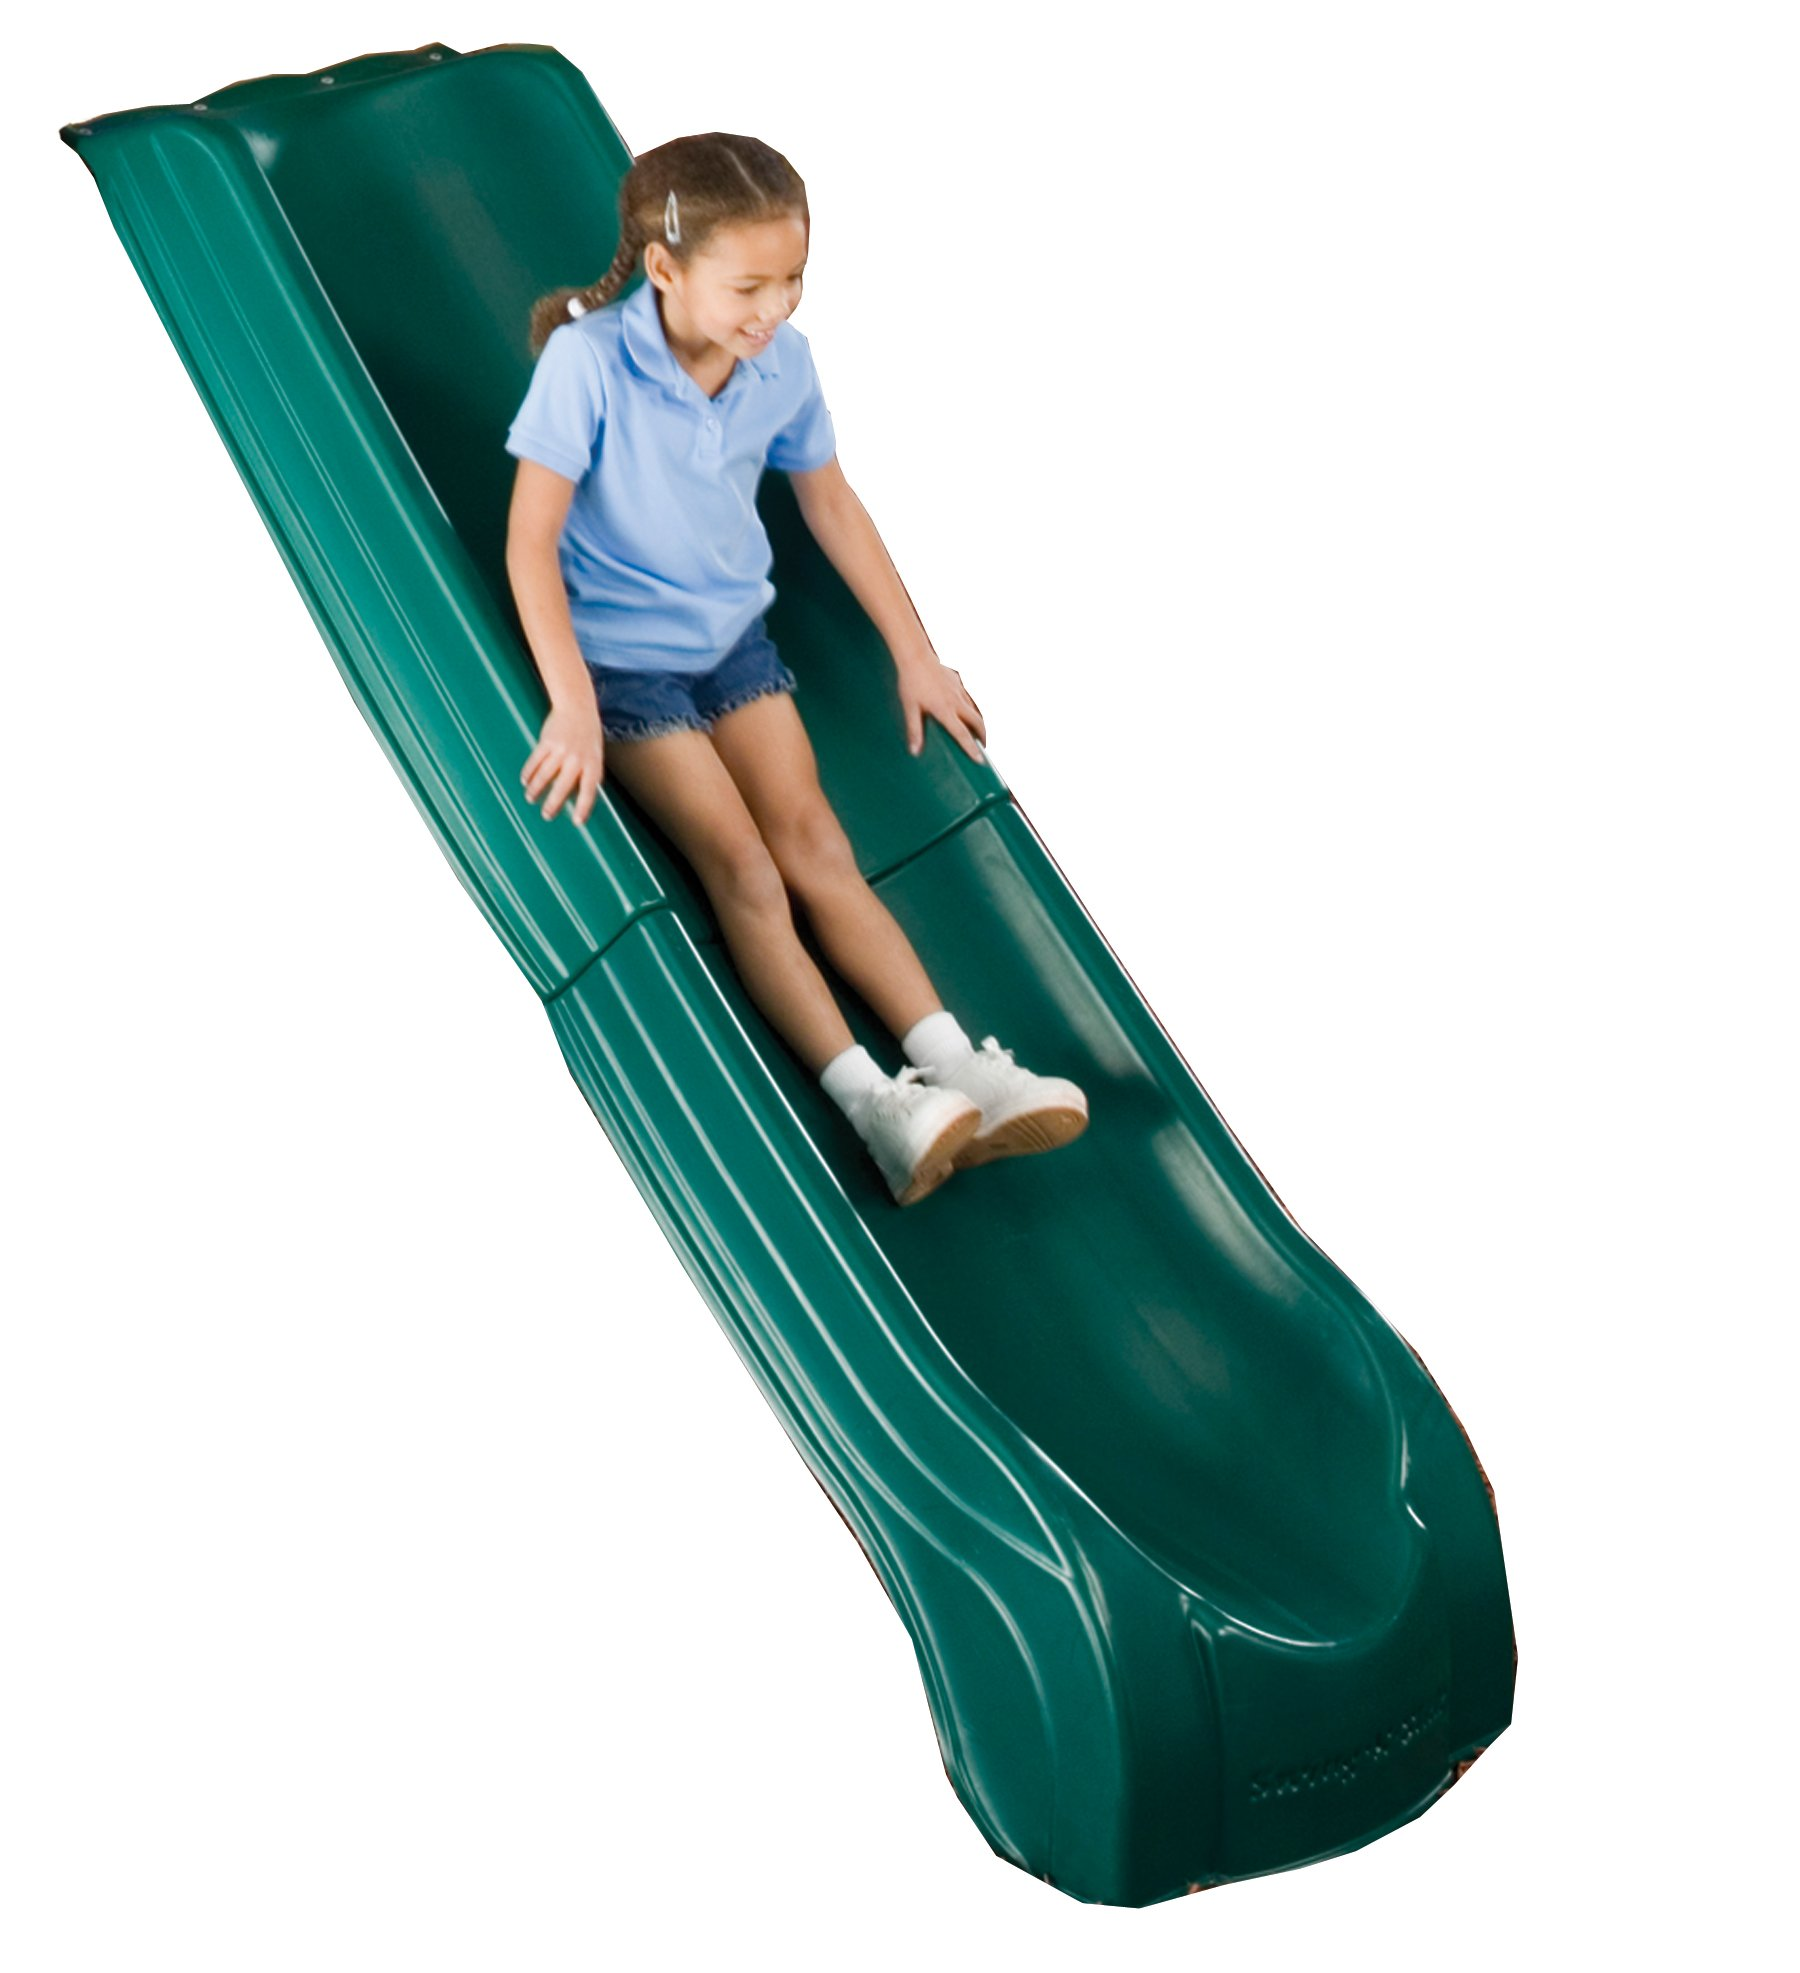 Swing N Slide Summit Slide - Green by Swing-N-Slide